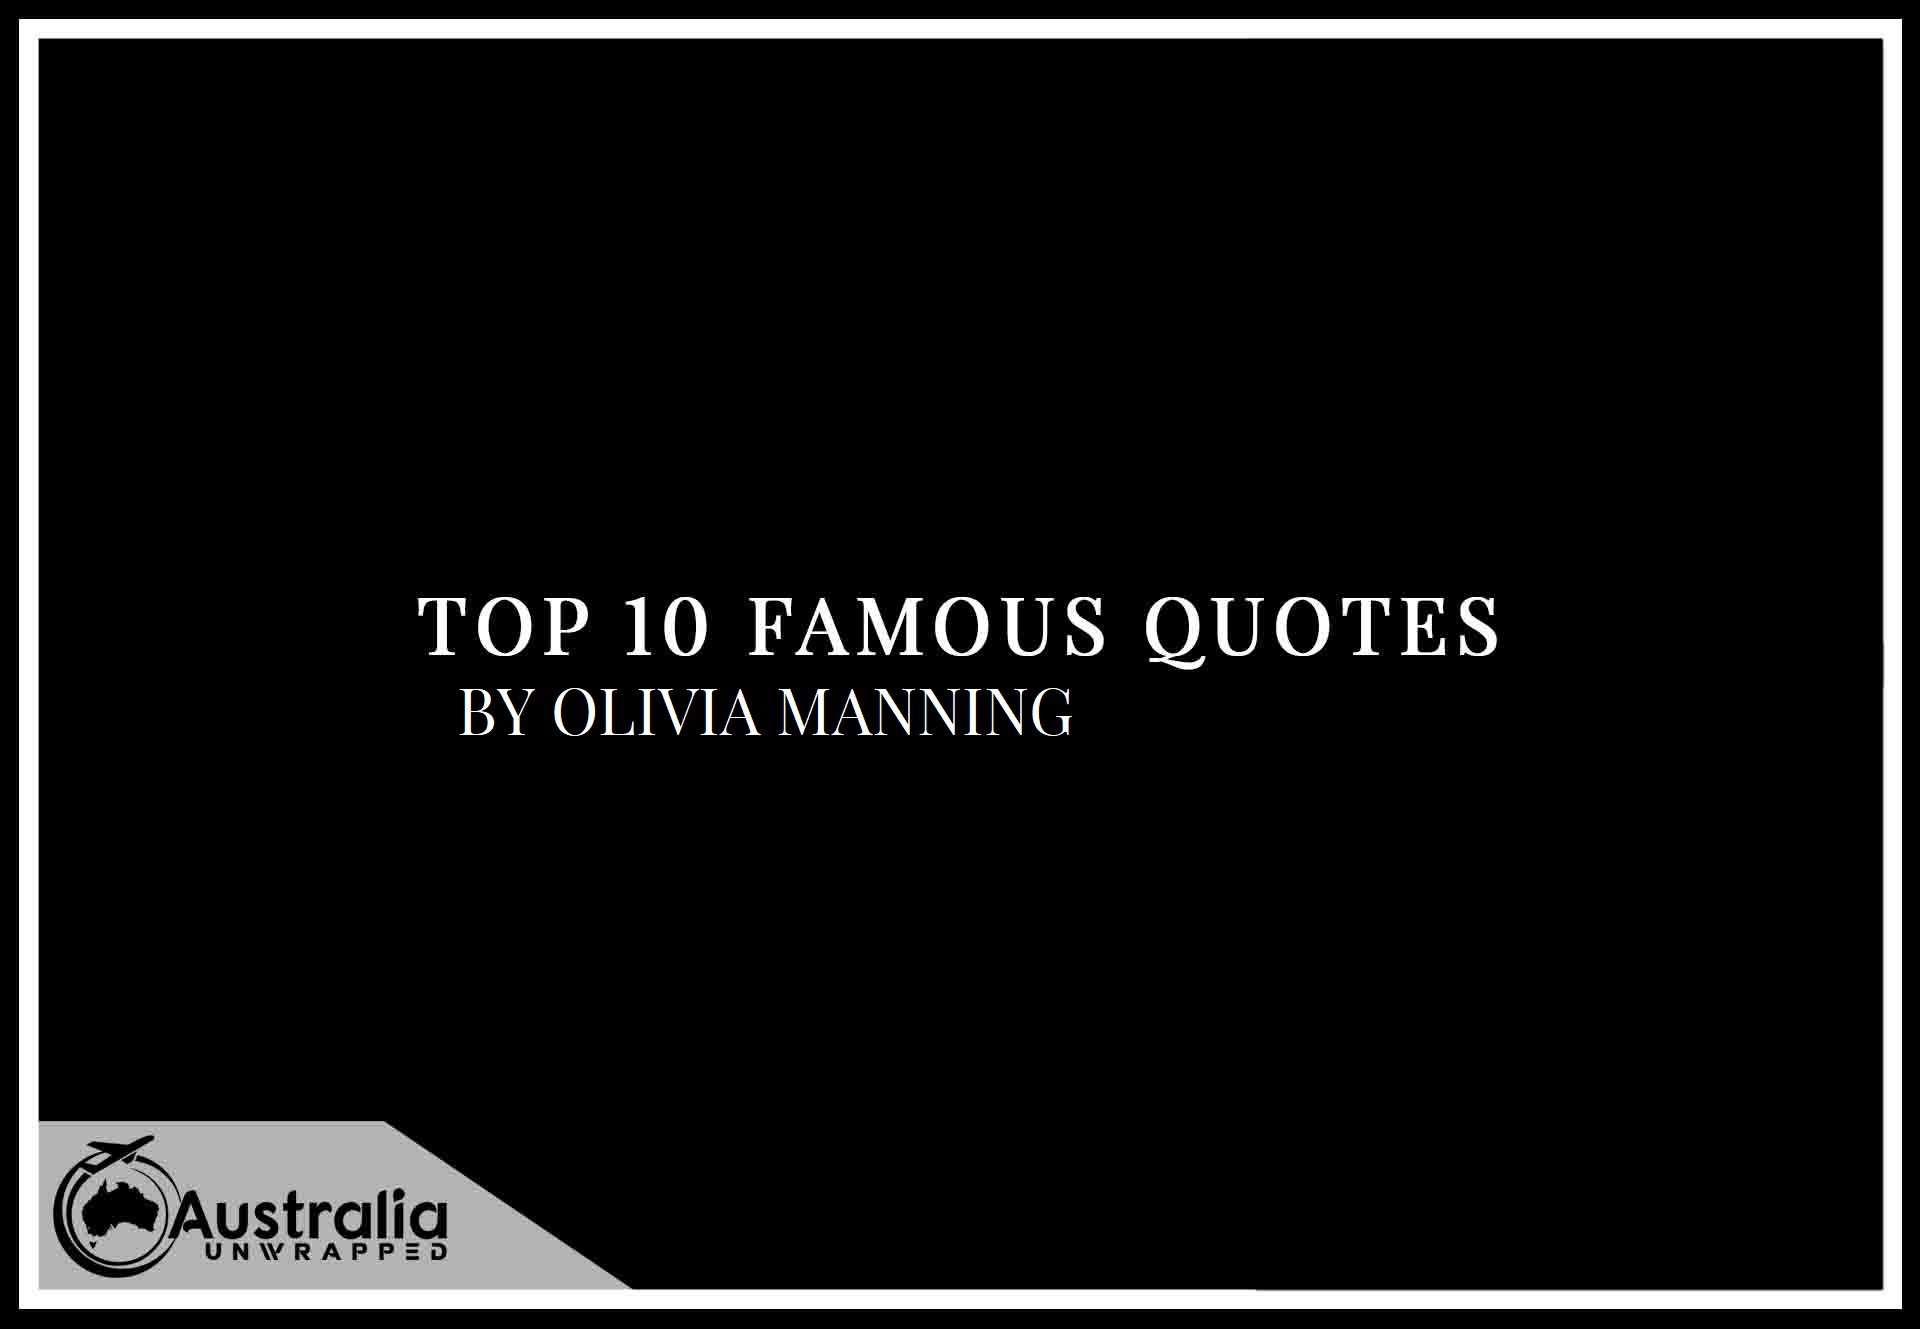 Top 10 Famous Quotes by Author Olivia Manning